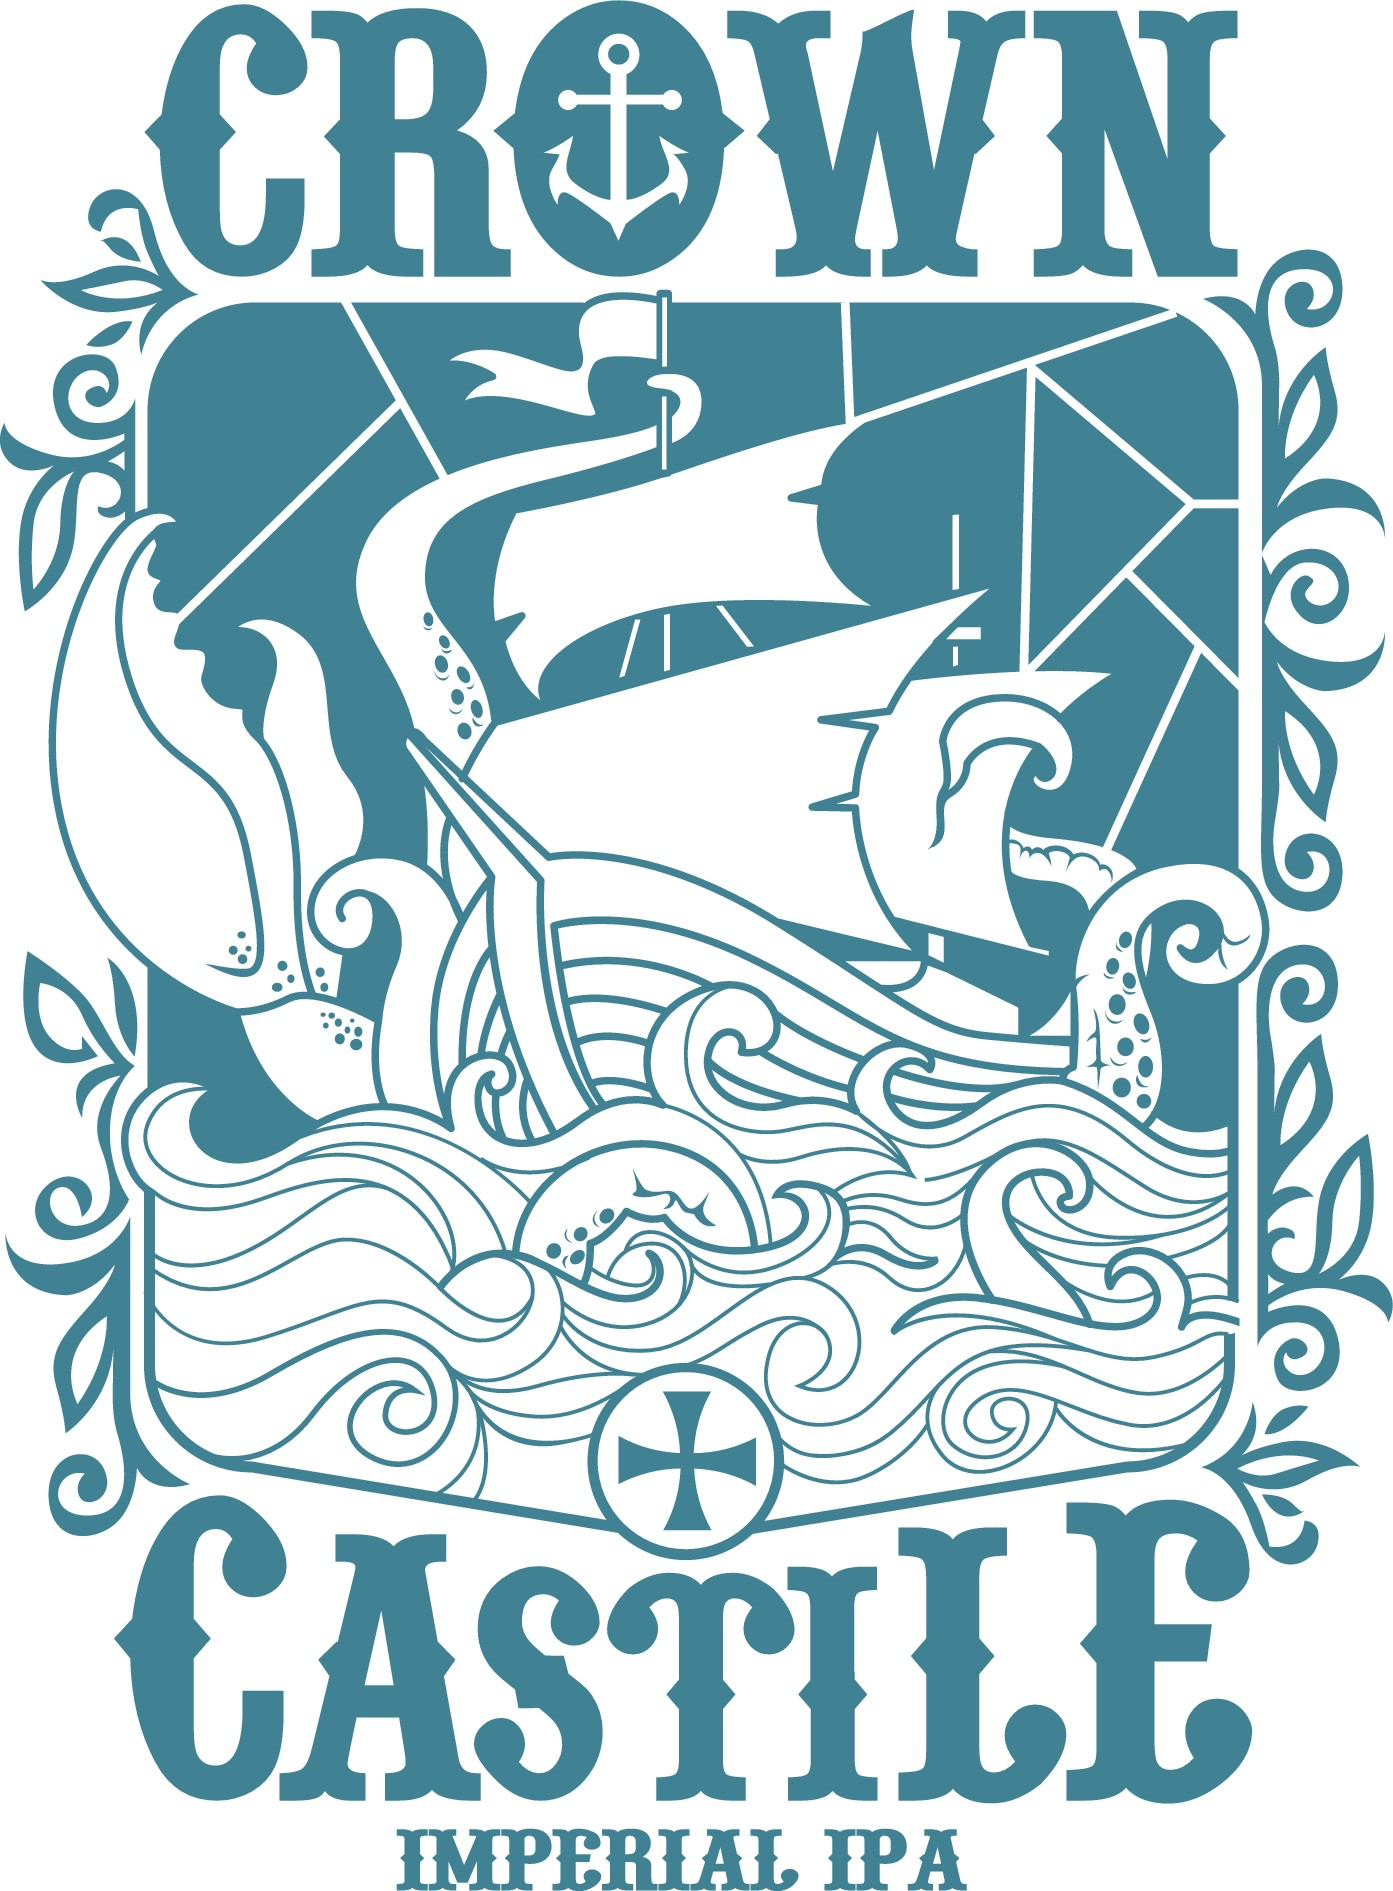 Design a mosaic or stained glass Ship/Boat beer bottle design for a t-shirt